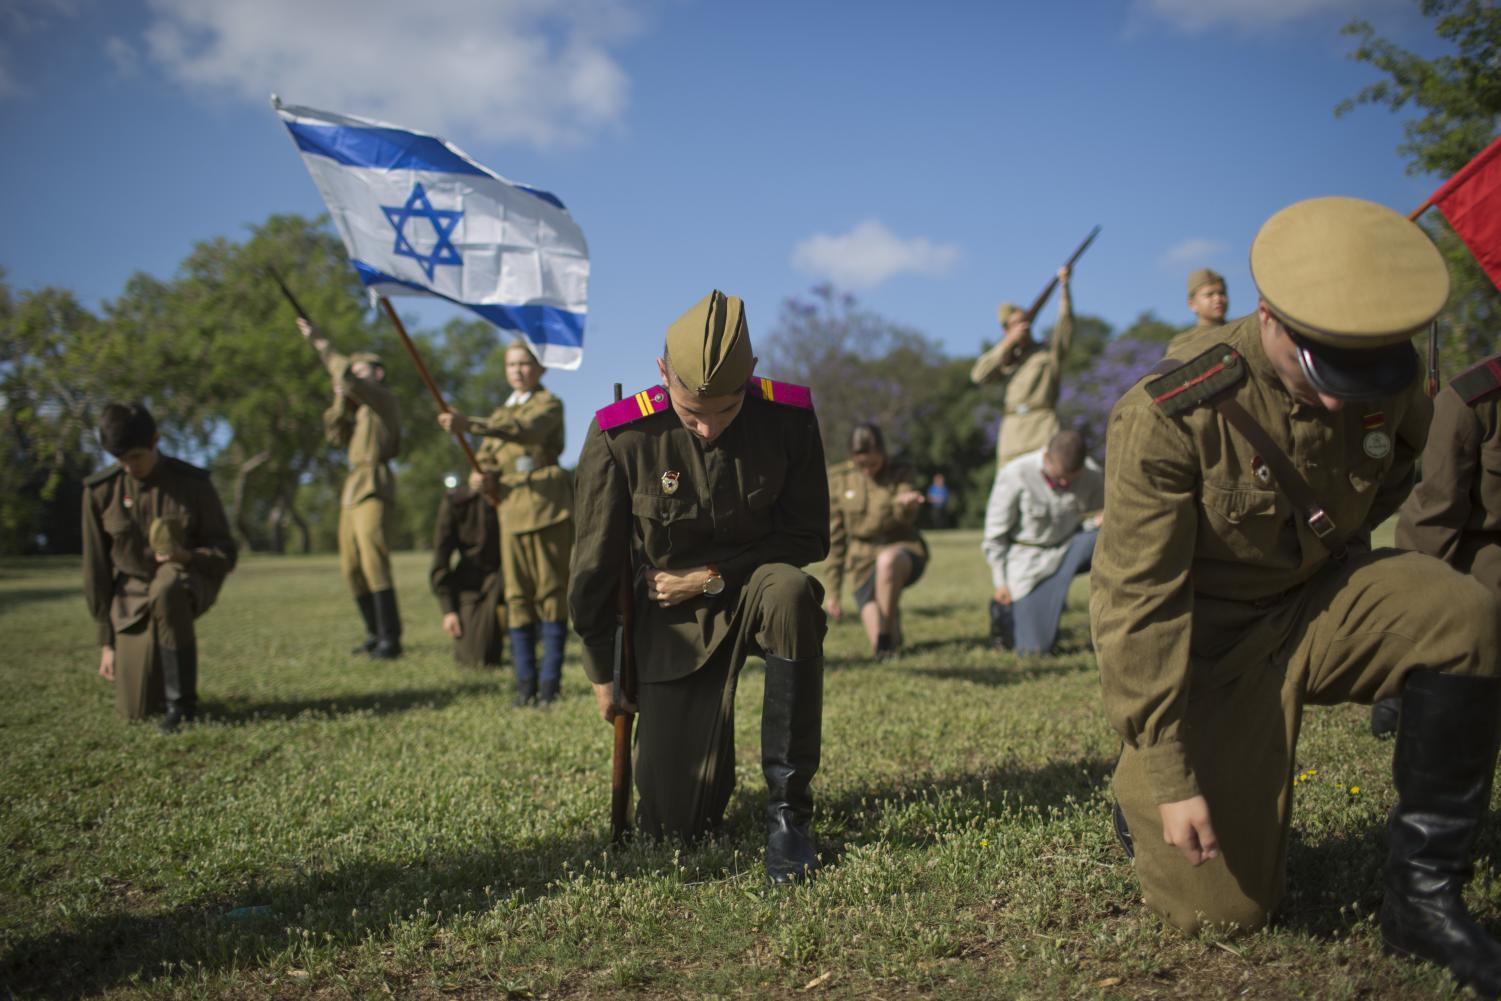 A World War II reenactment group celebrates Israel Victory Day in Ashdod, Israel on May 9, 2018